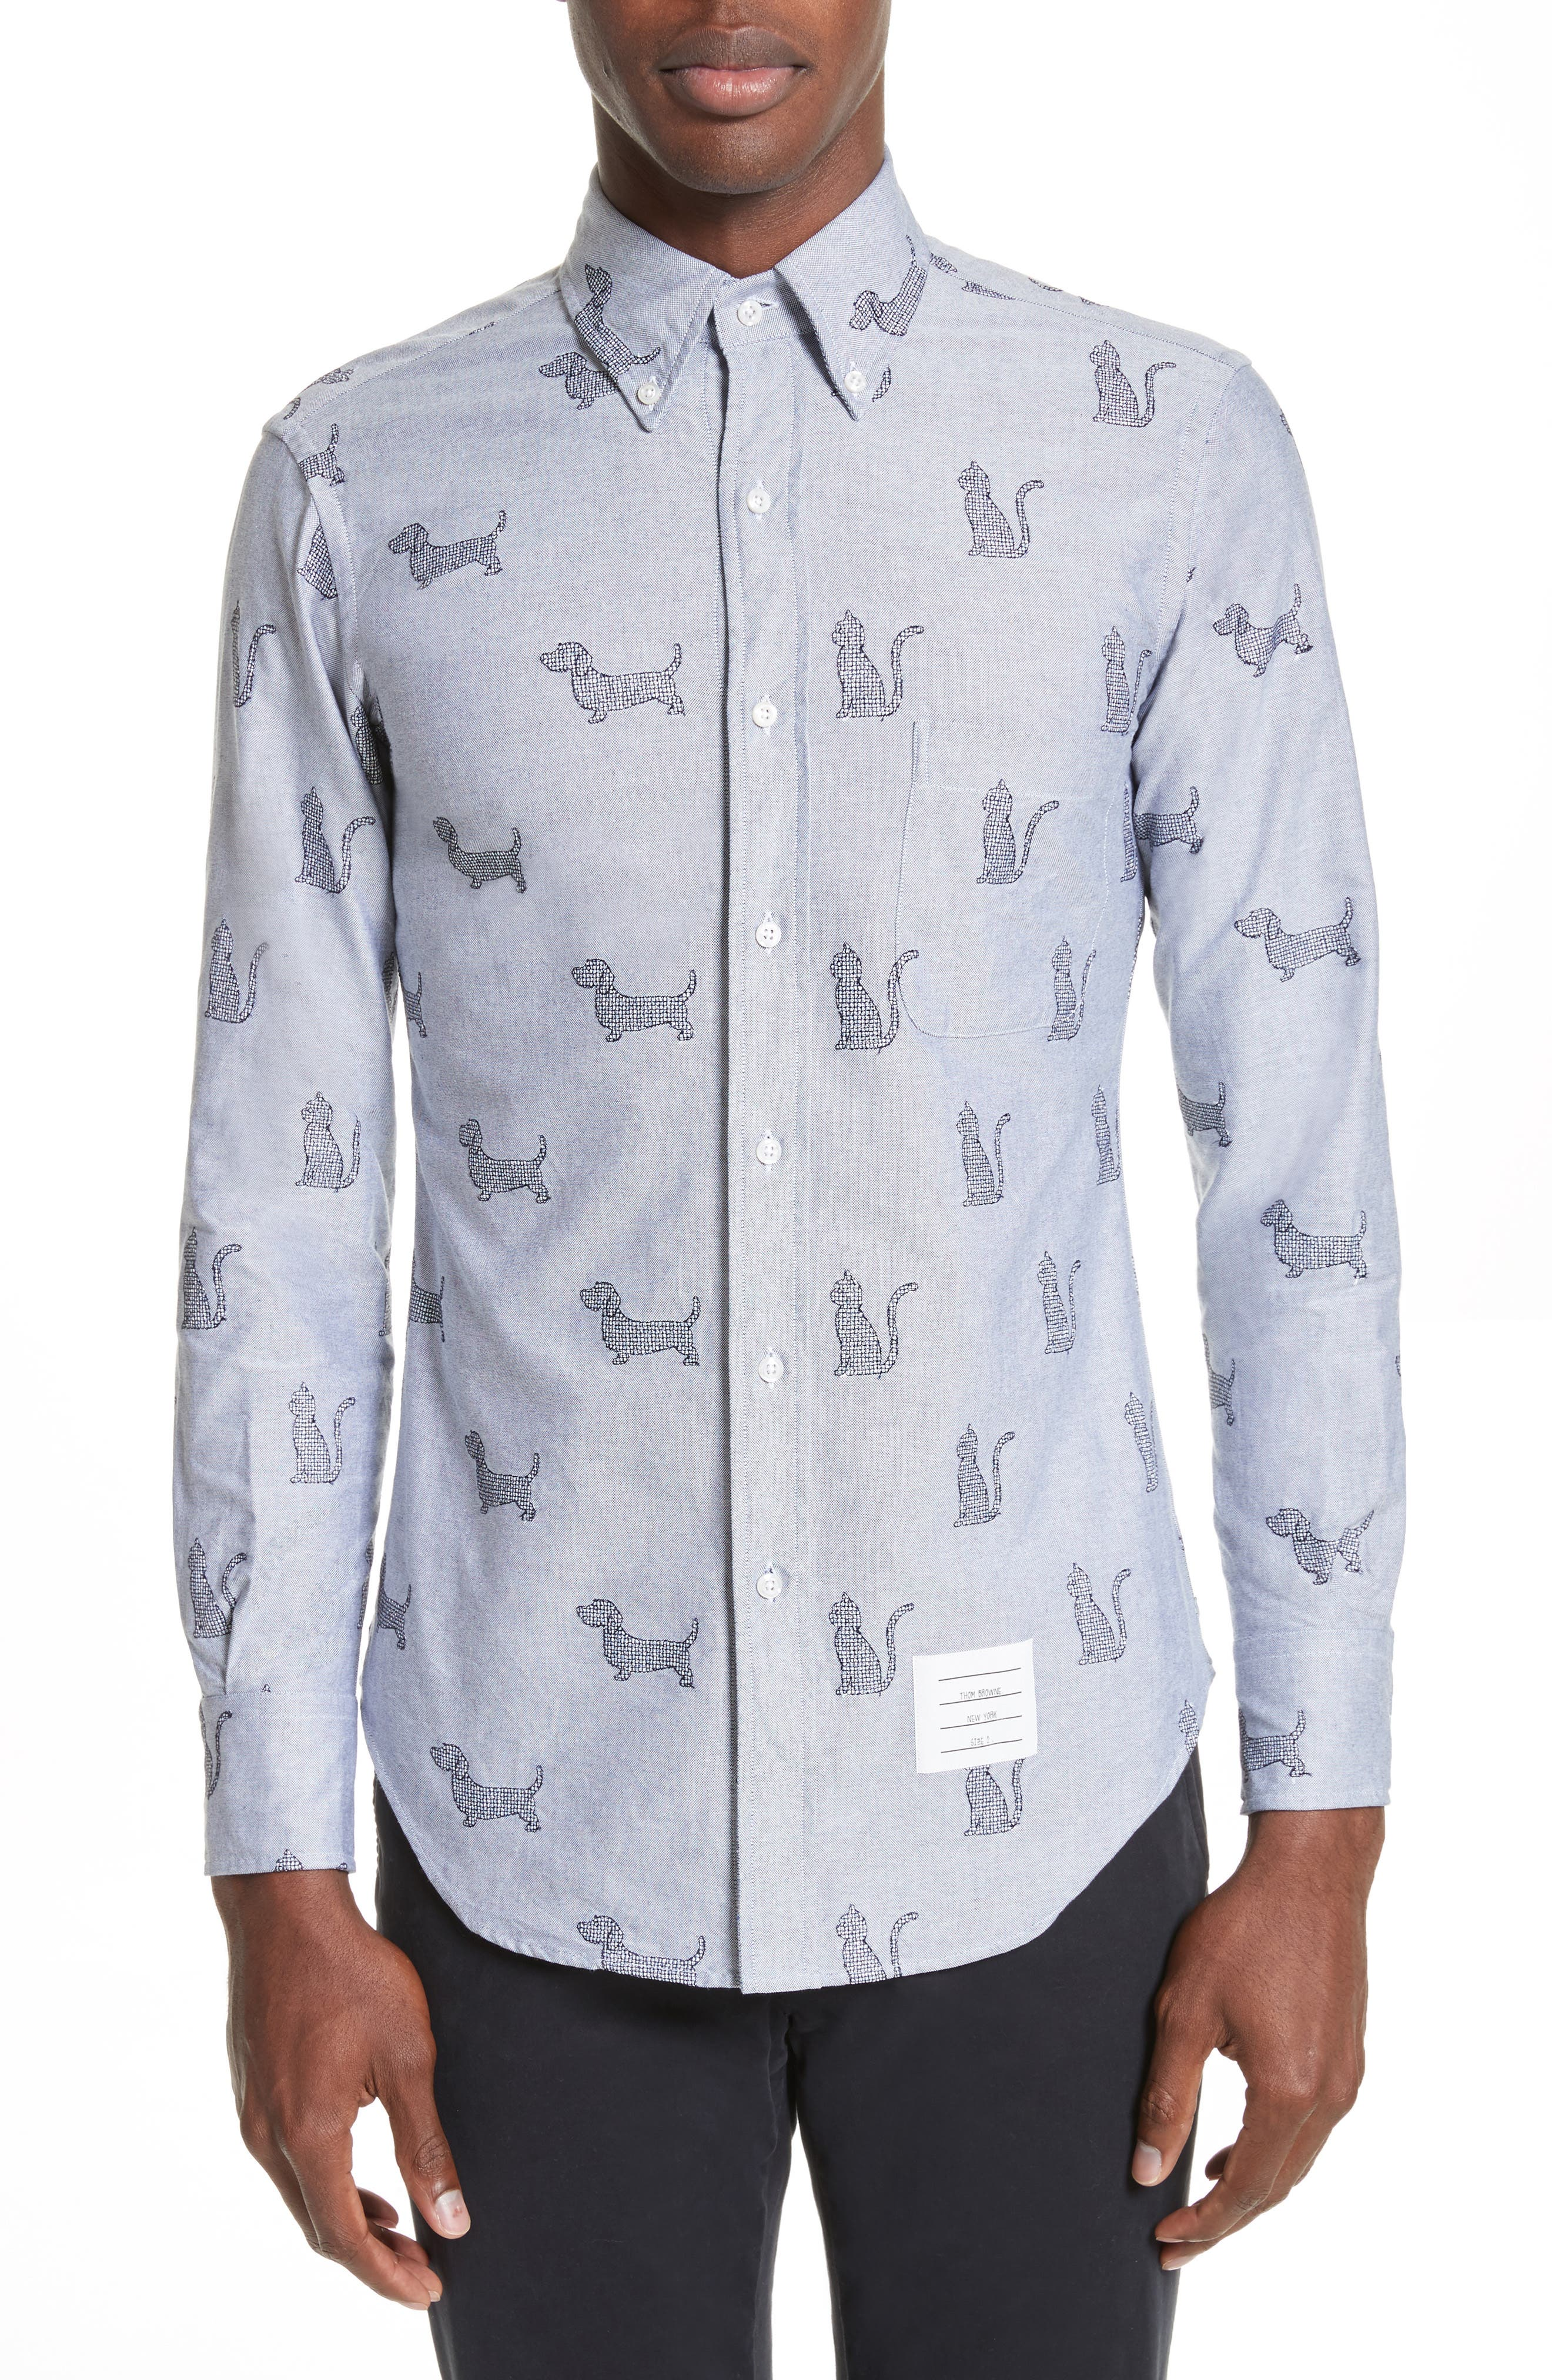 Thom Browne Daschund Kitty Print Shirt